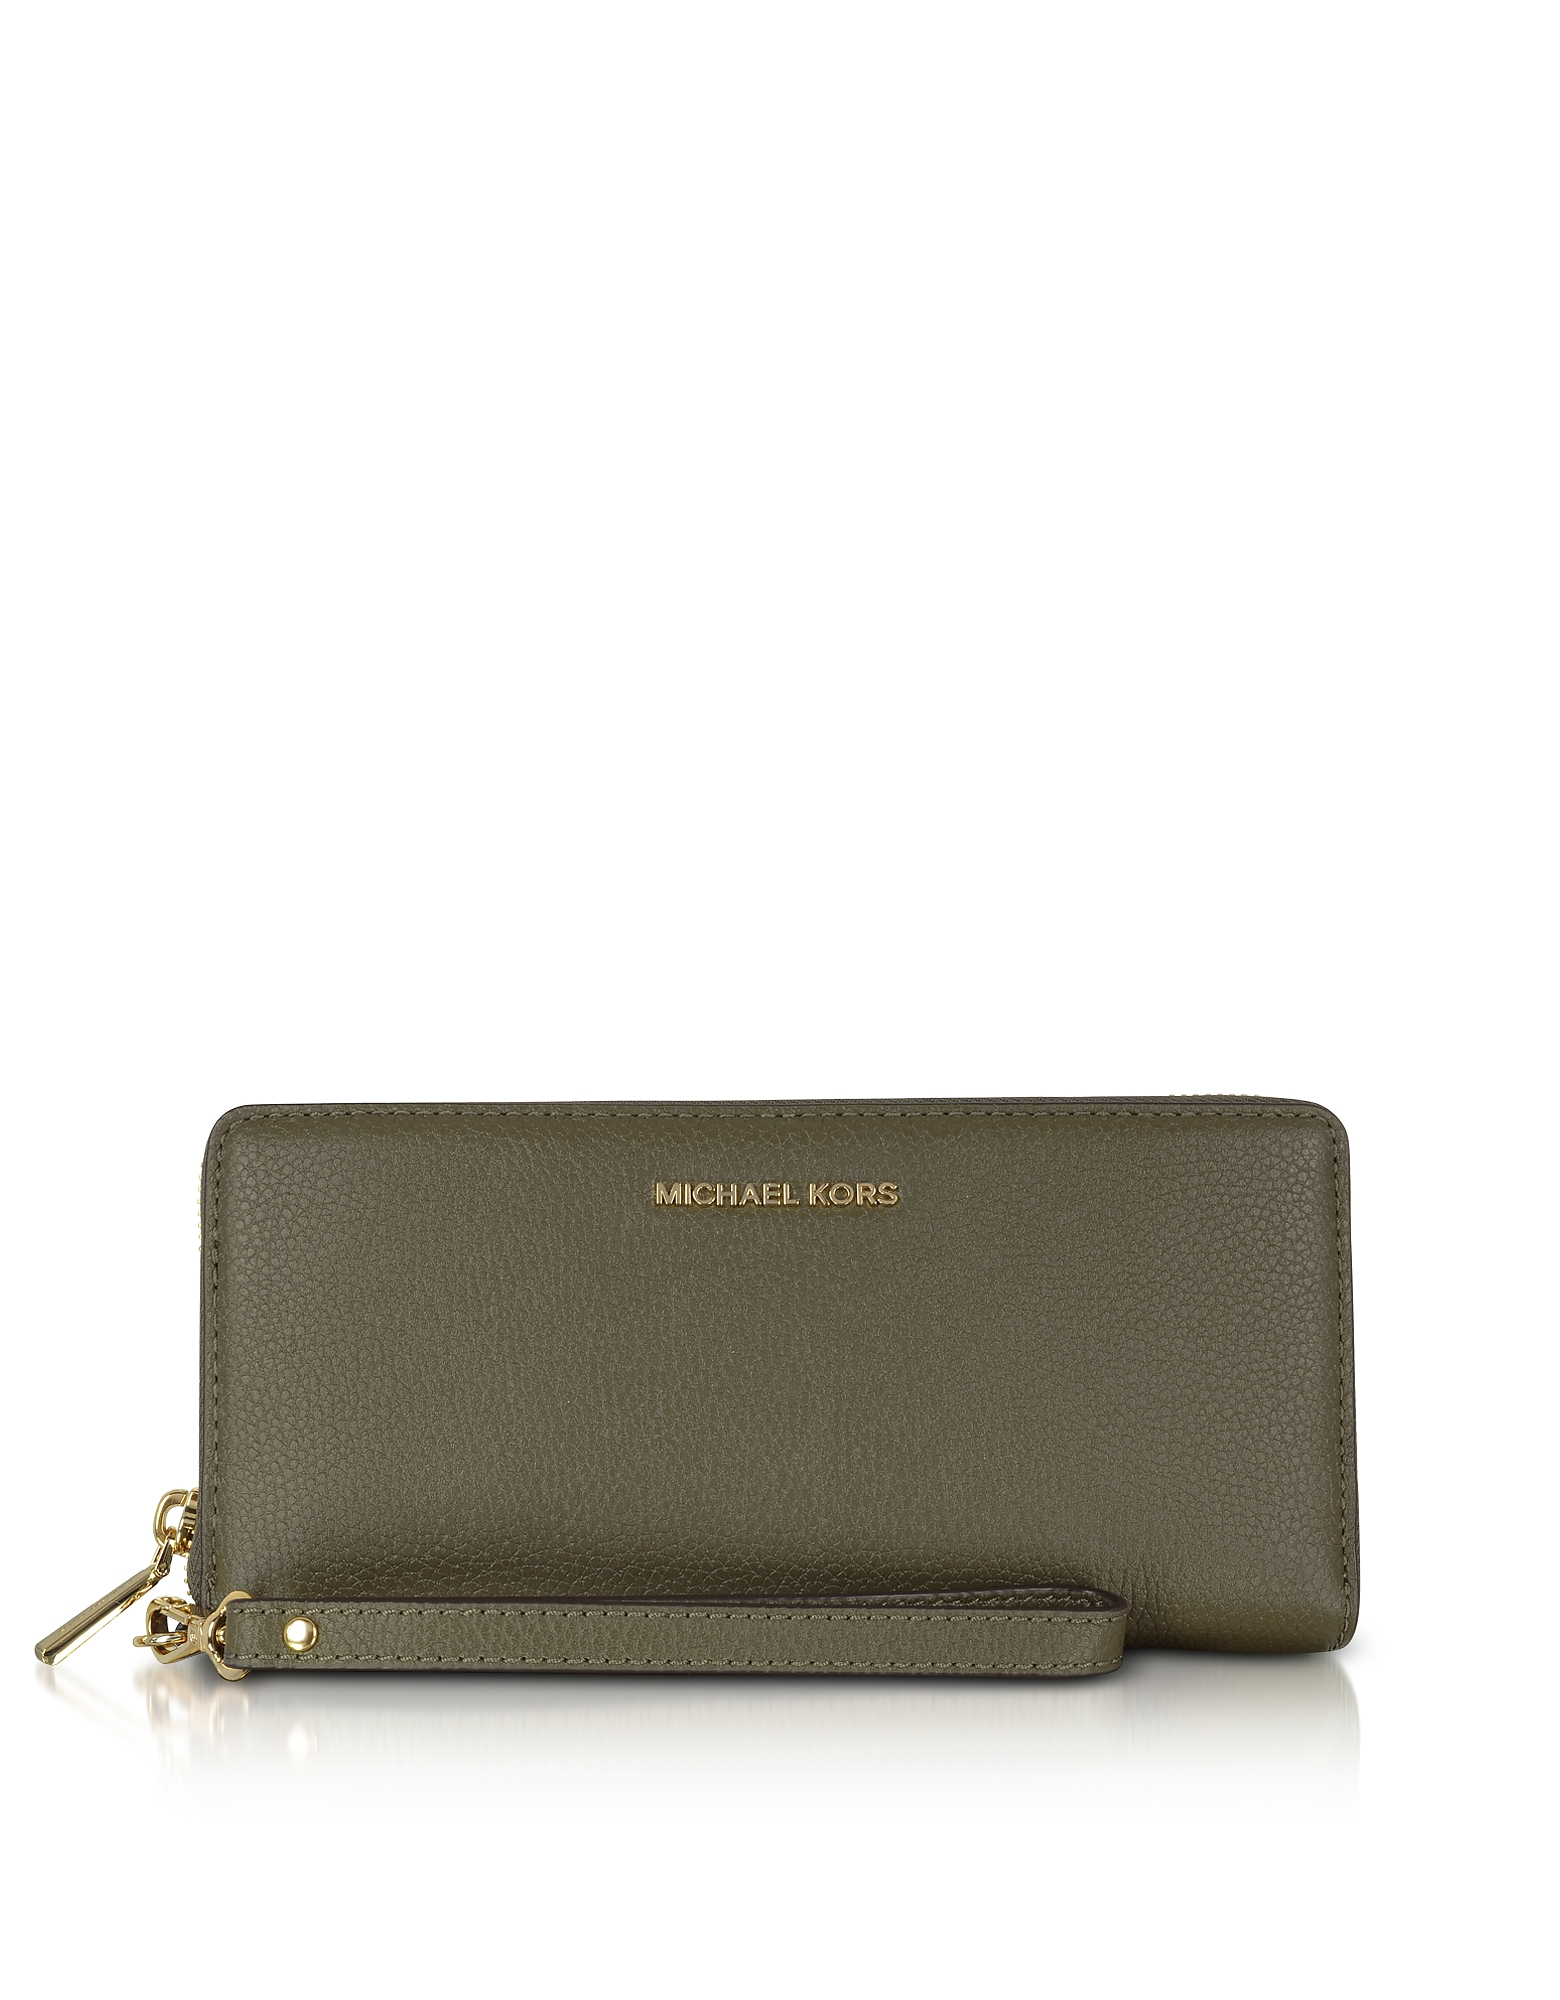 Michael Kors Handbags, Mercer Large Olive Pebble Leather Continental Wallet